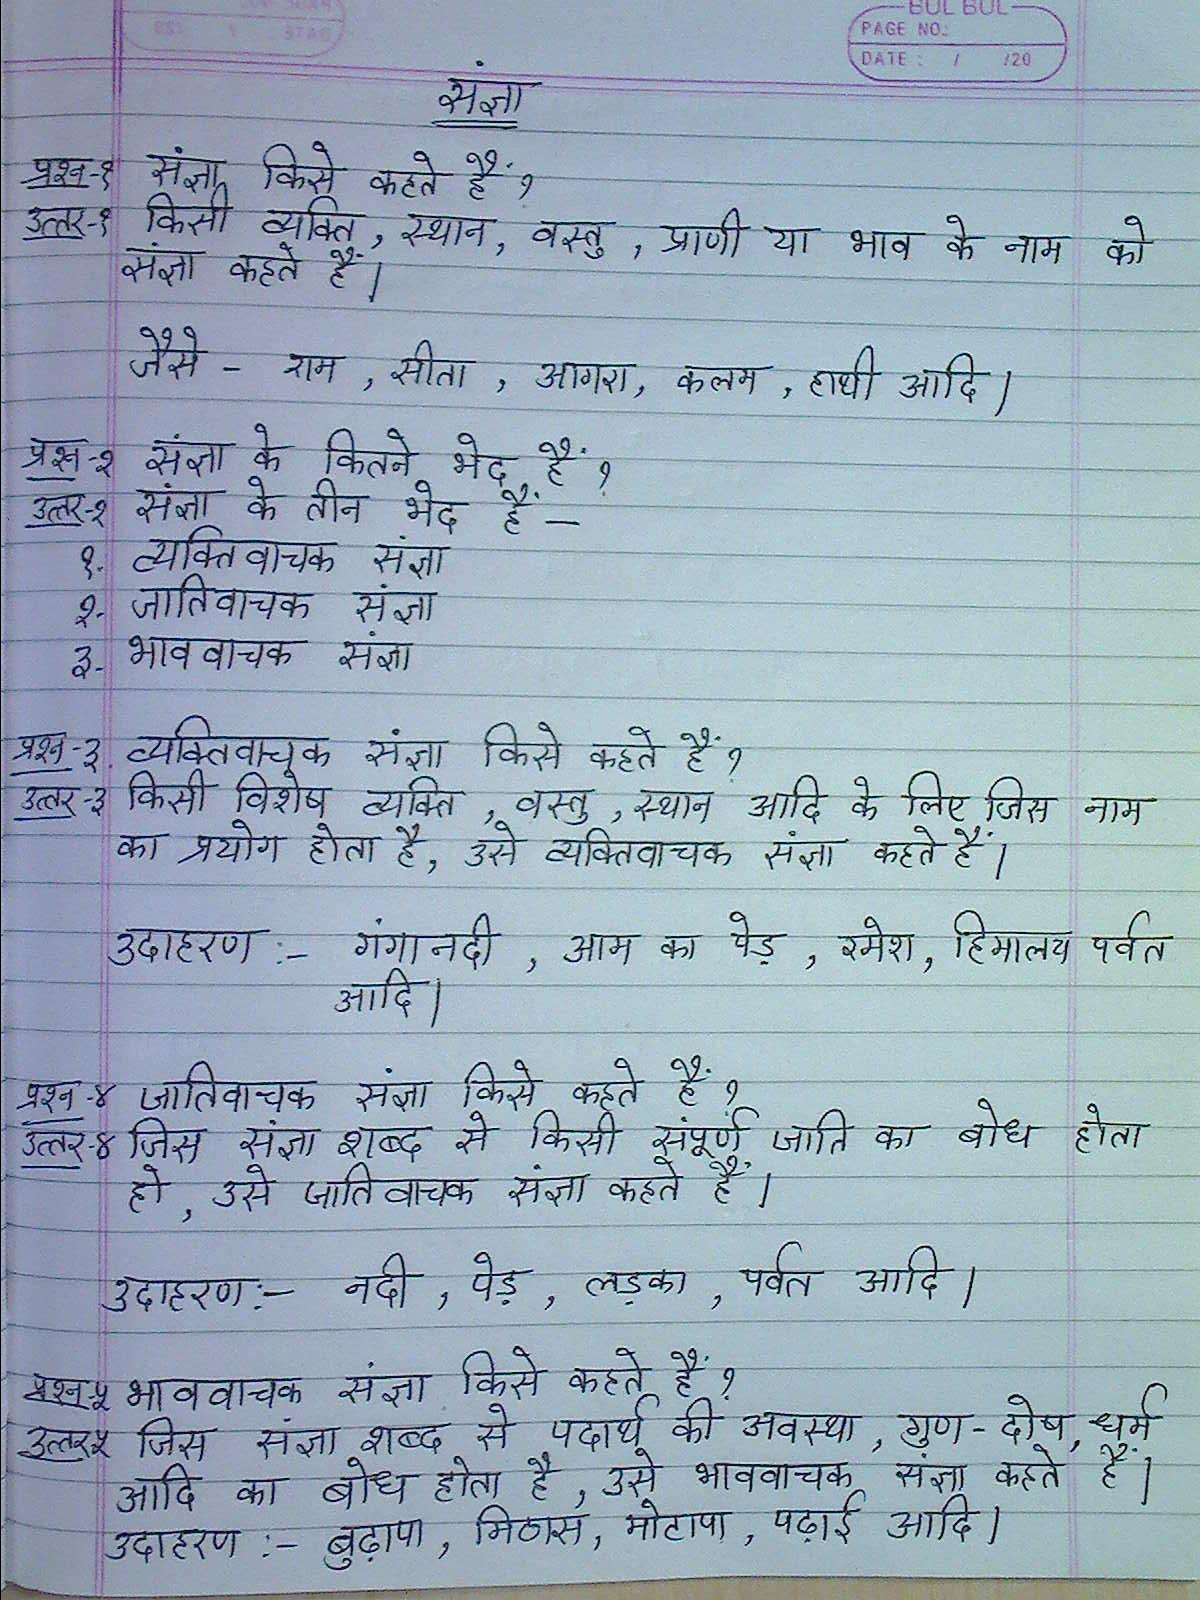 Stars of pis ahmedabad std iv august 2015 hindi notes sangya ccuart Image collections